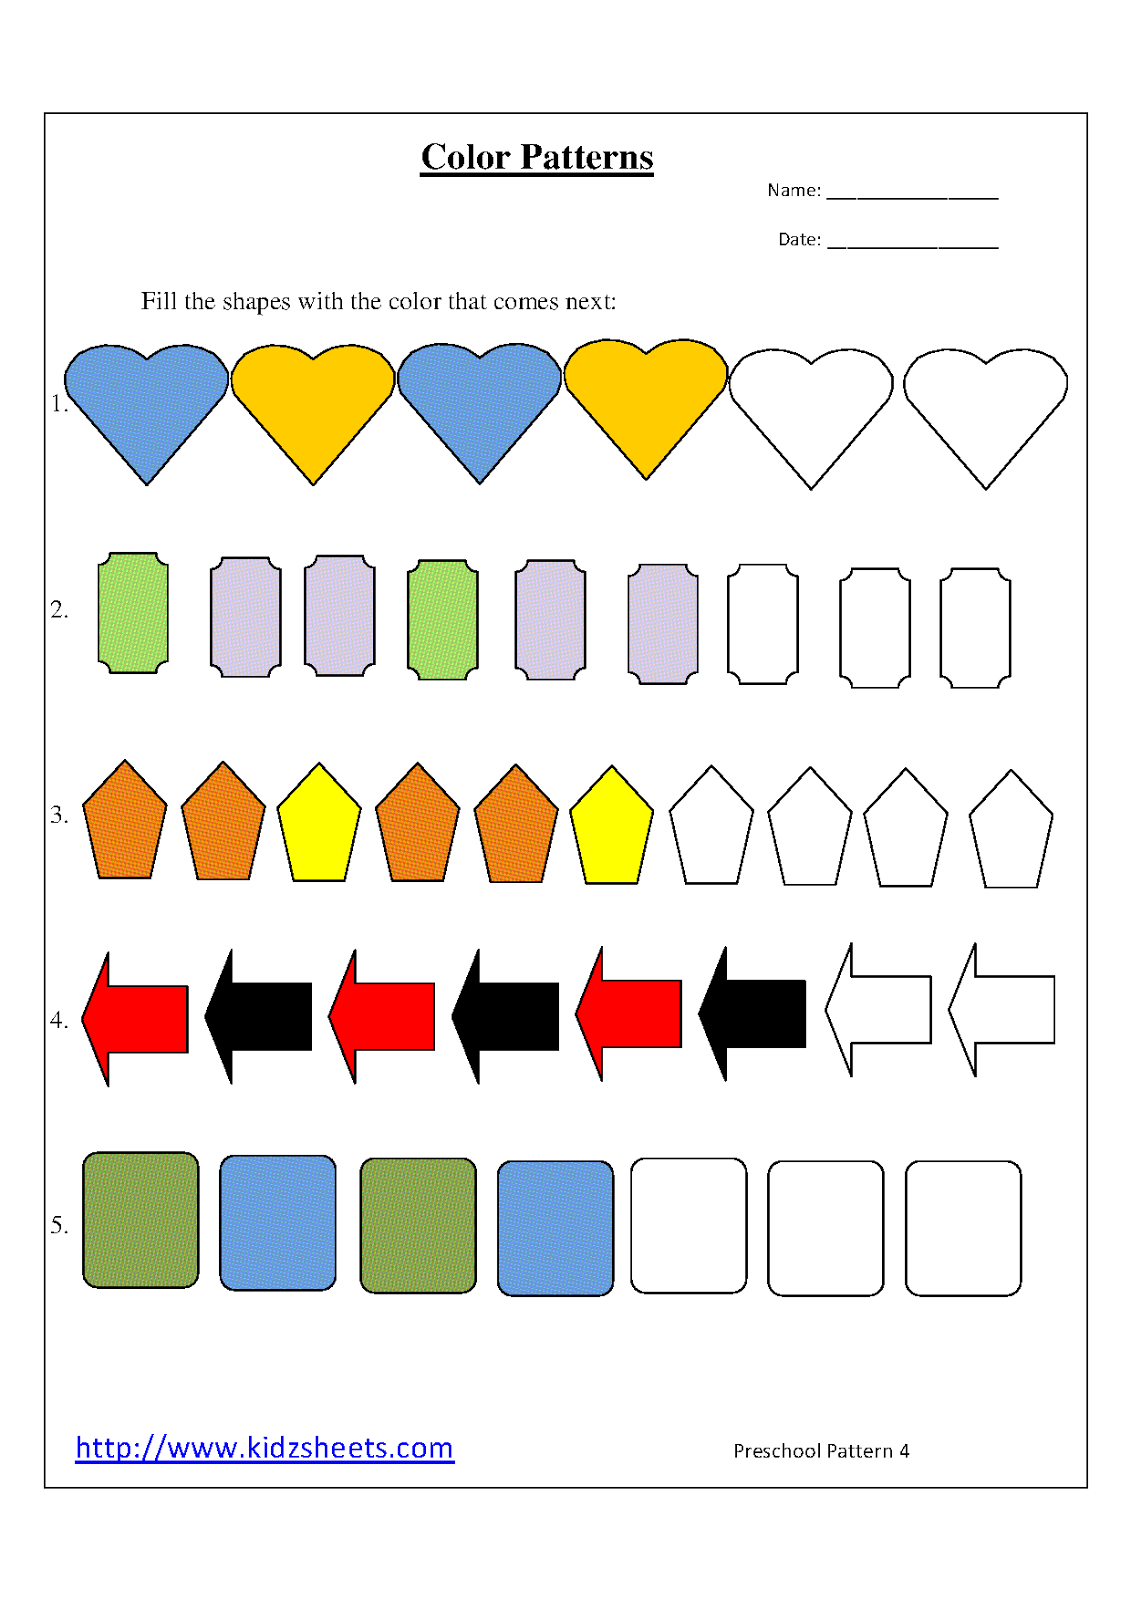 Kidz Worksheets Preschool Color Patterns Worksheet4